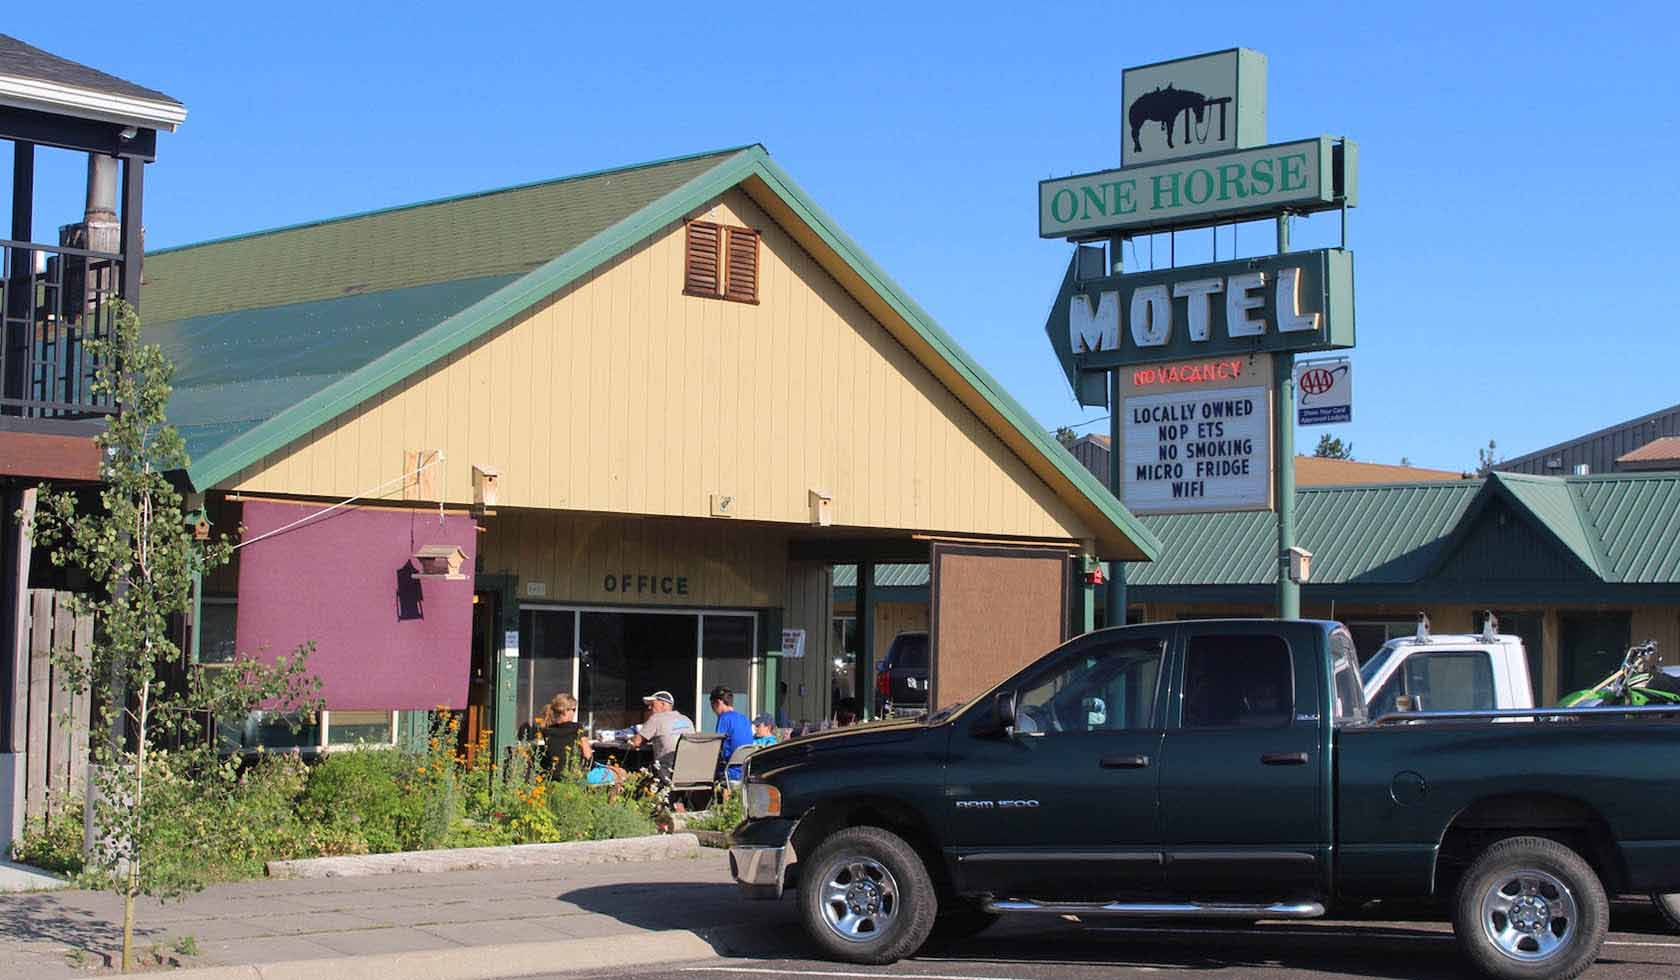 One Horse Motel profile image